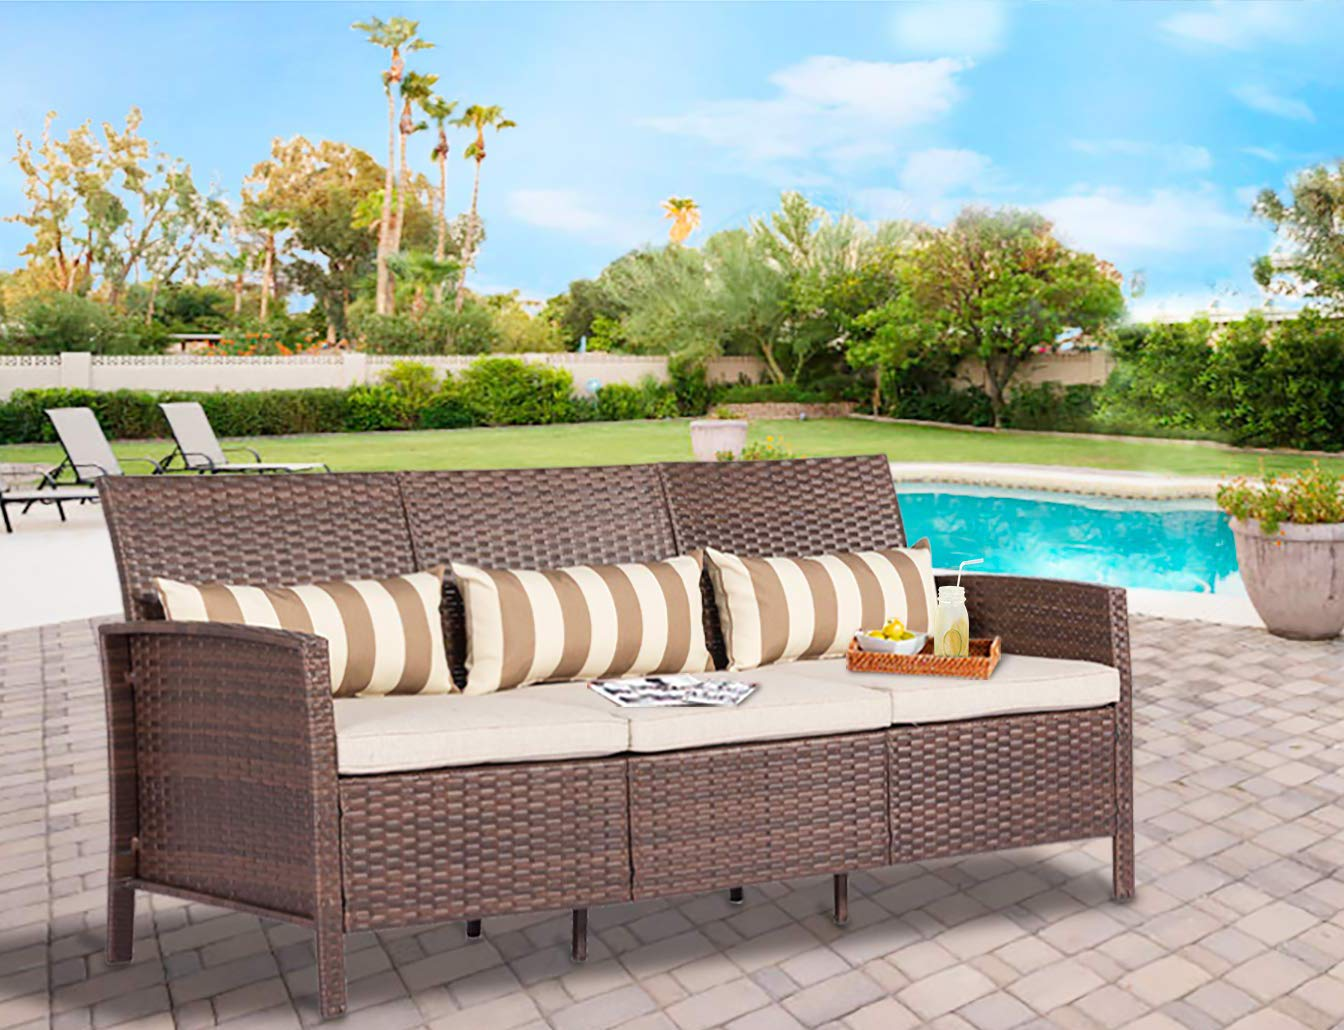 Solaura Outdoor Furniture Brown Wicker Patio Sofa (Seats 3) Light Brown Cushions & Classic Gold Stripe Throw Pillows